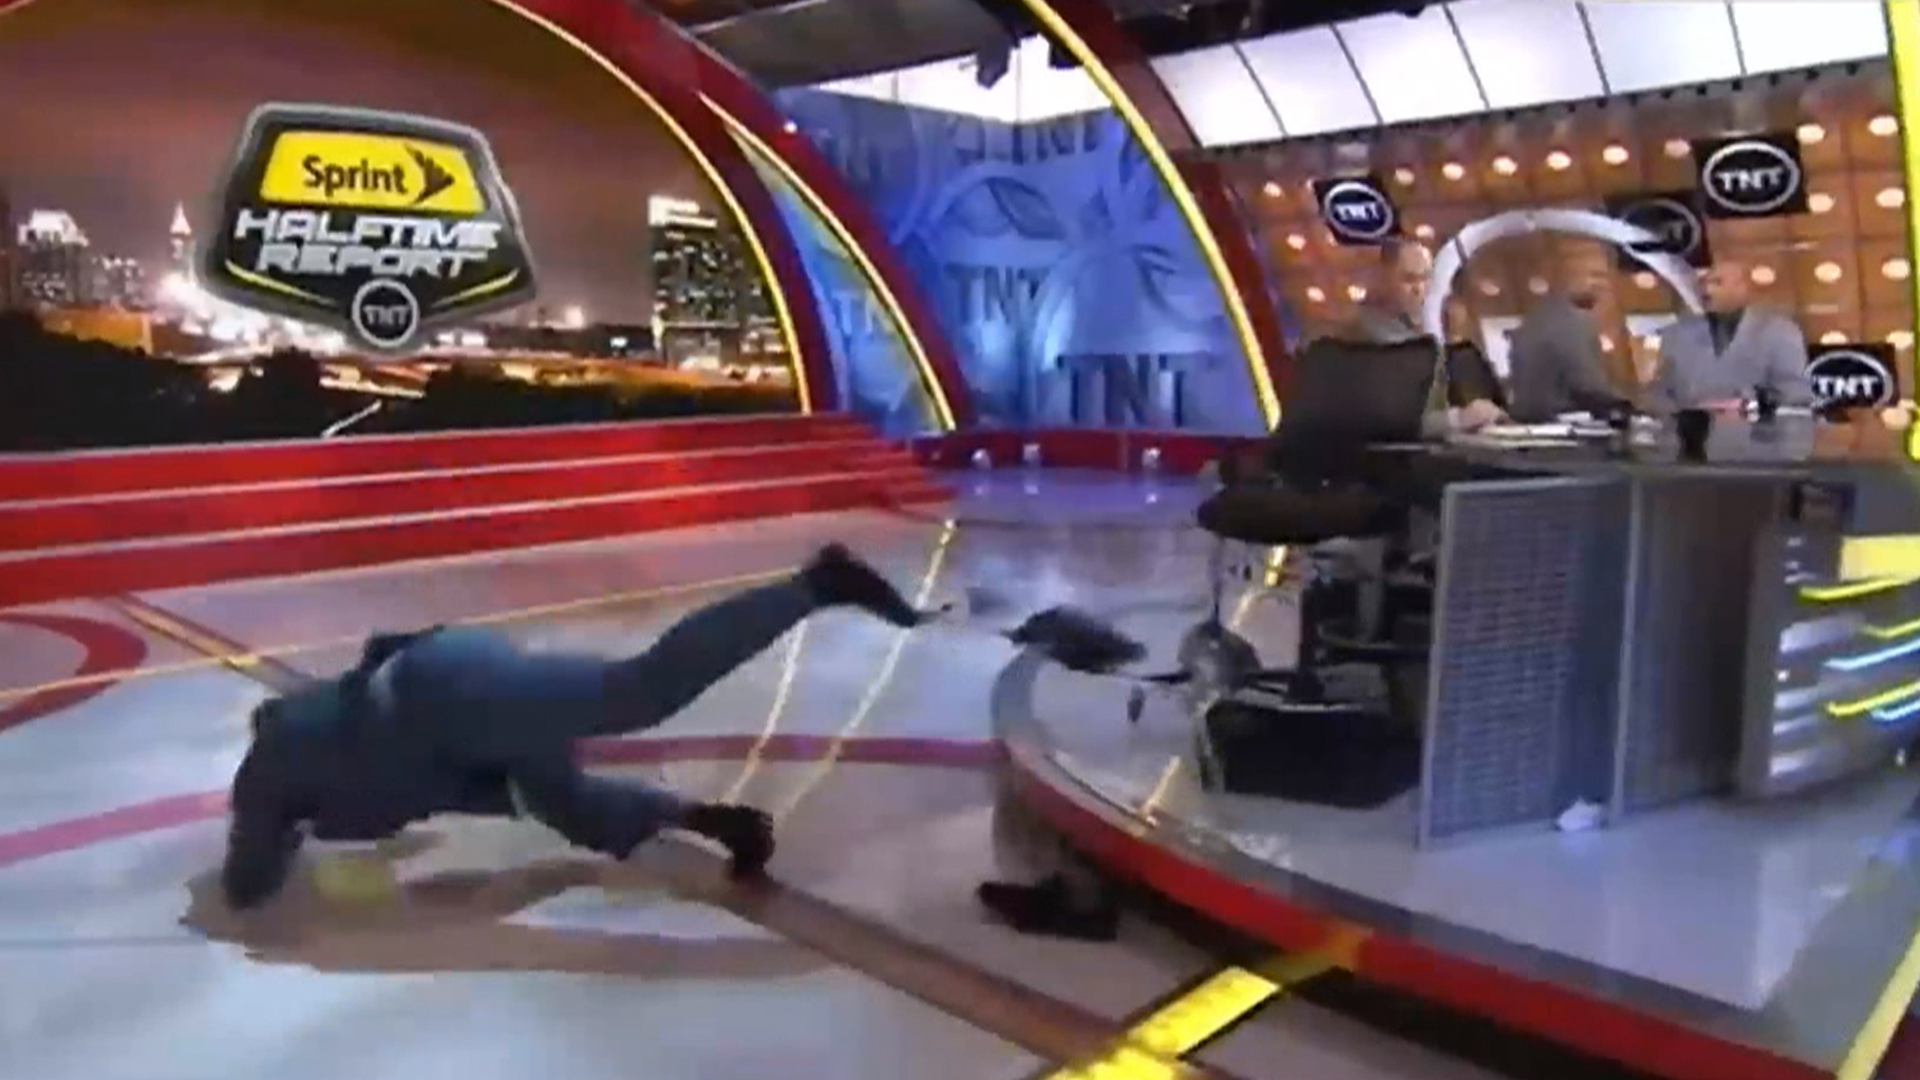 Wipeout After Fall On Set Shaq Offers Cash For Best Meme